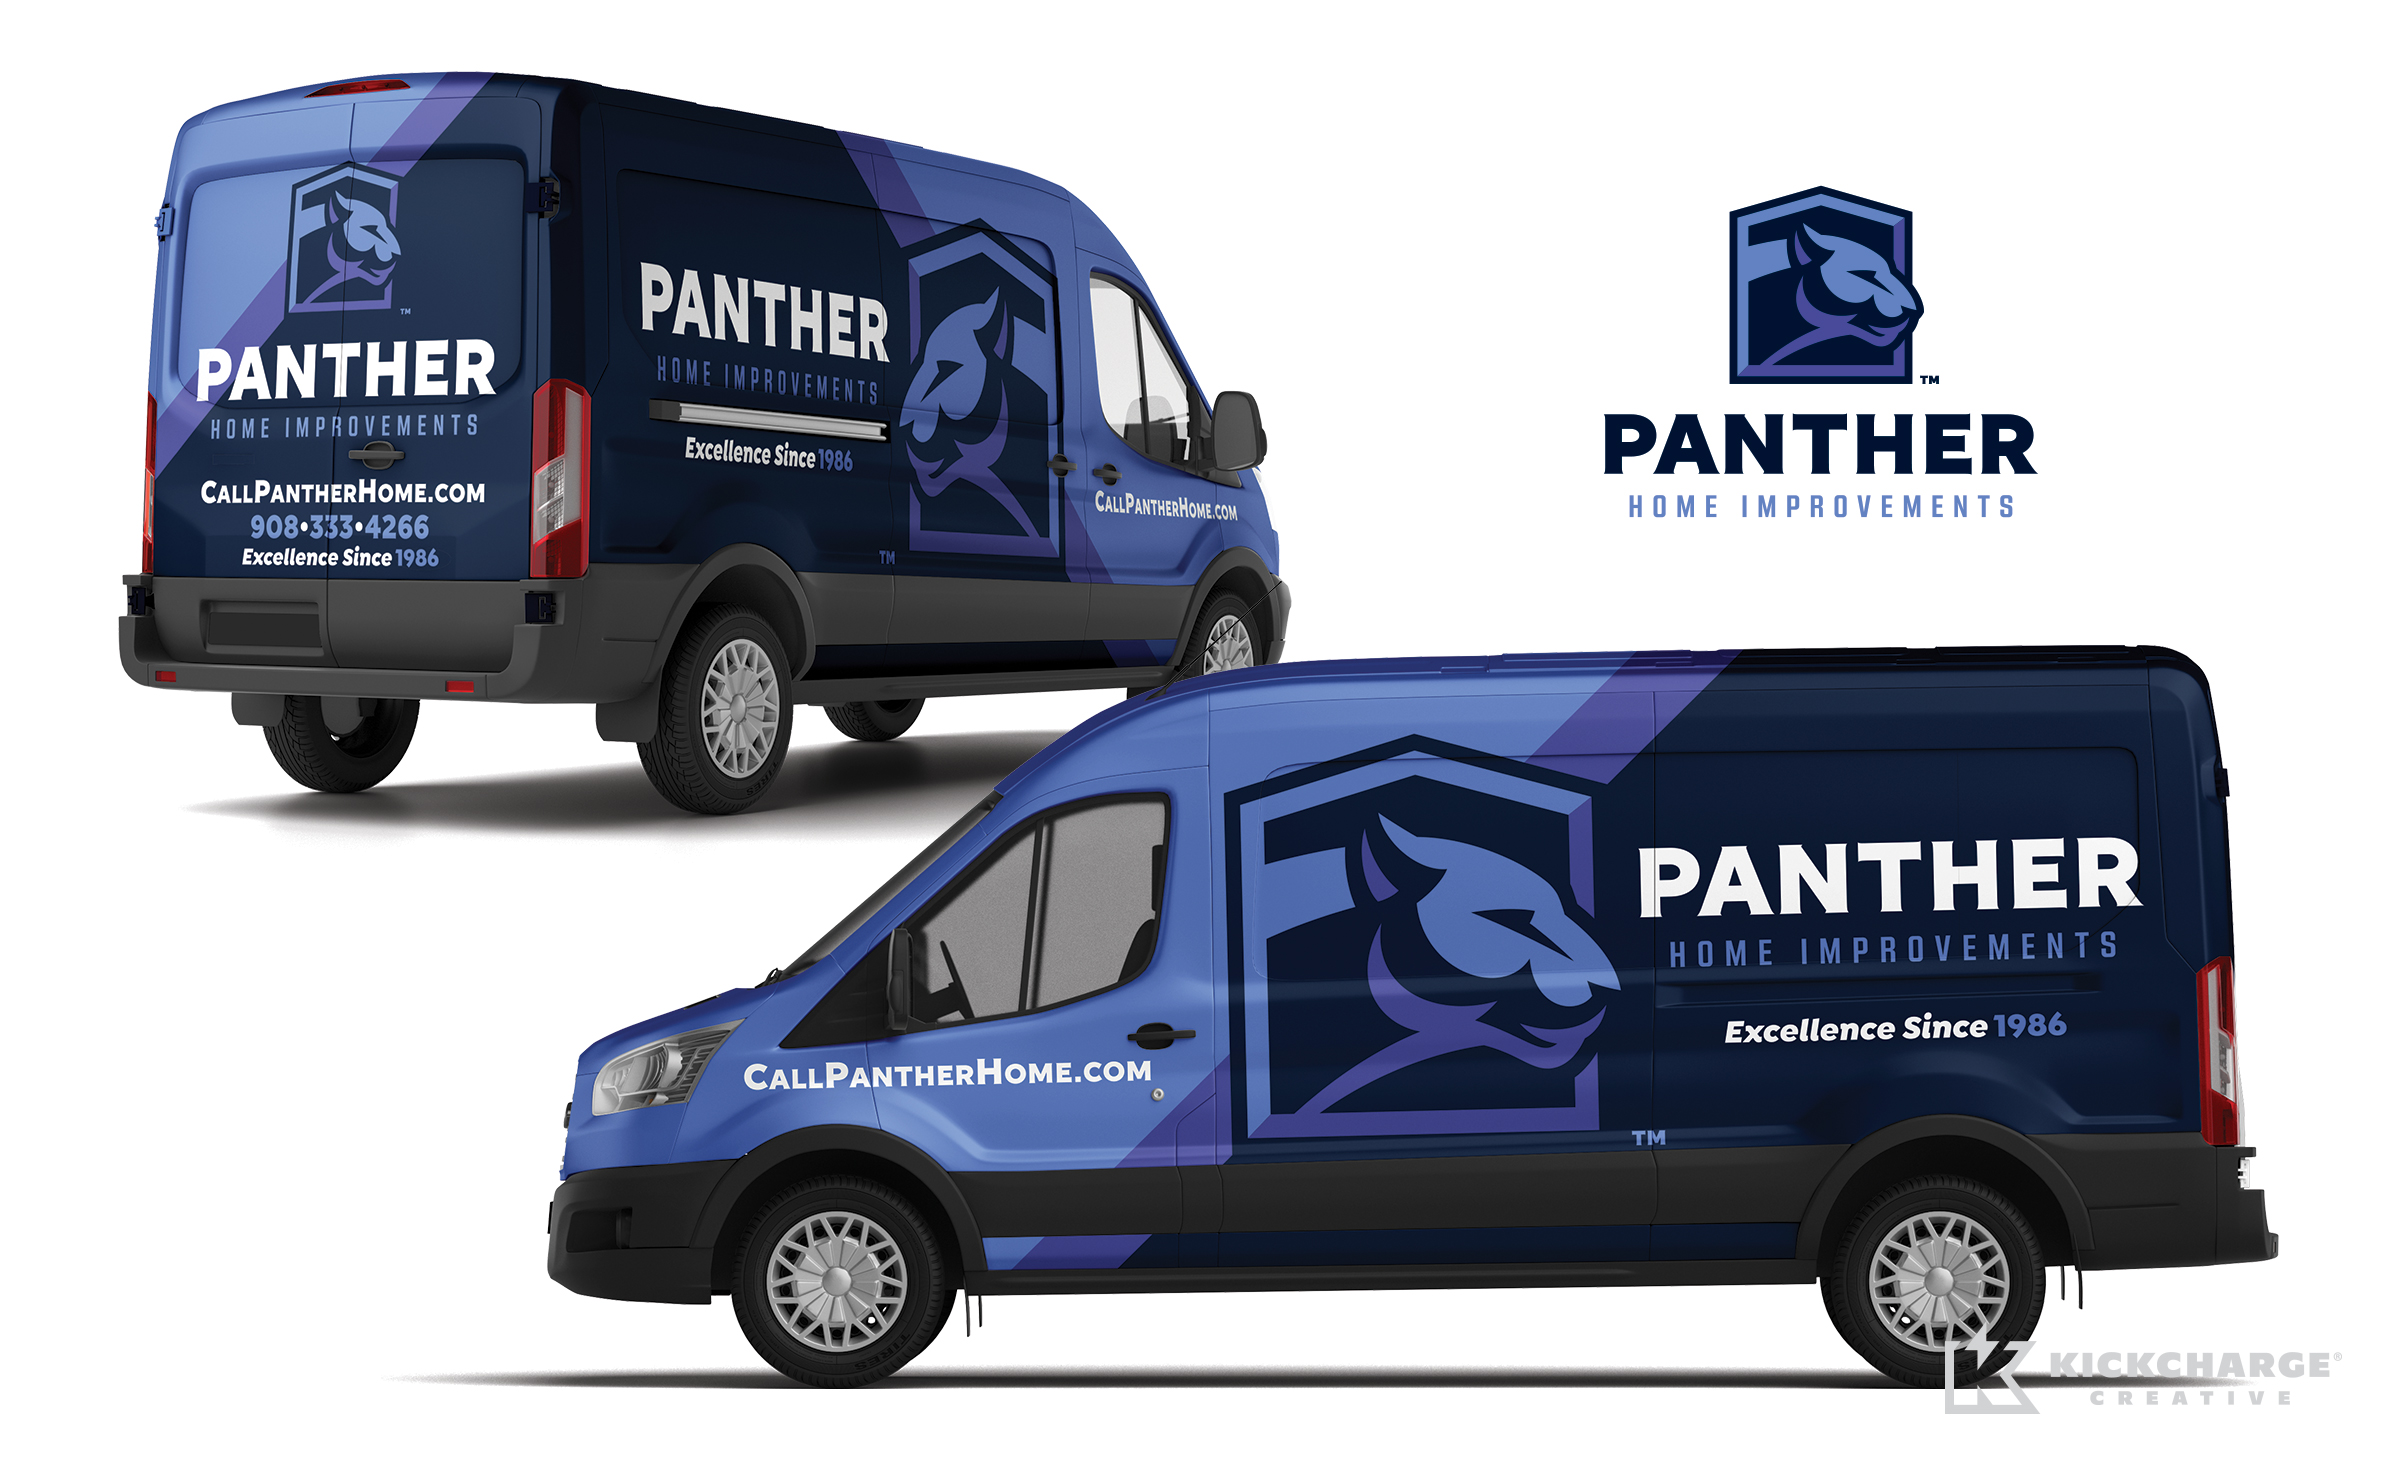 Panther Home Improvements